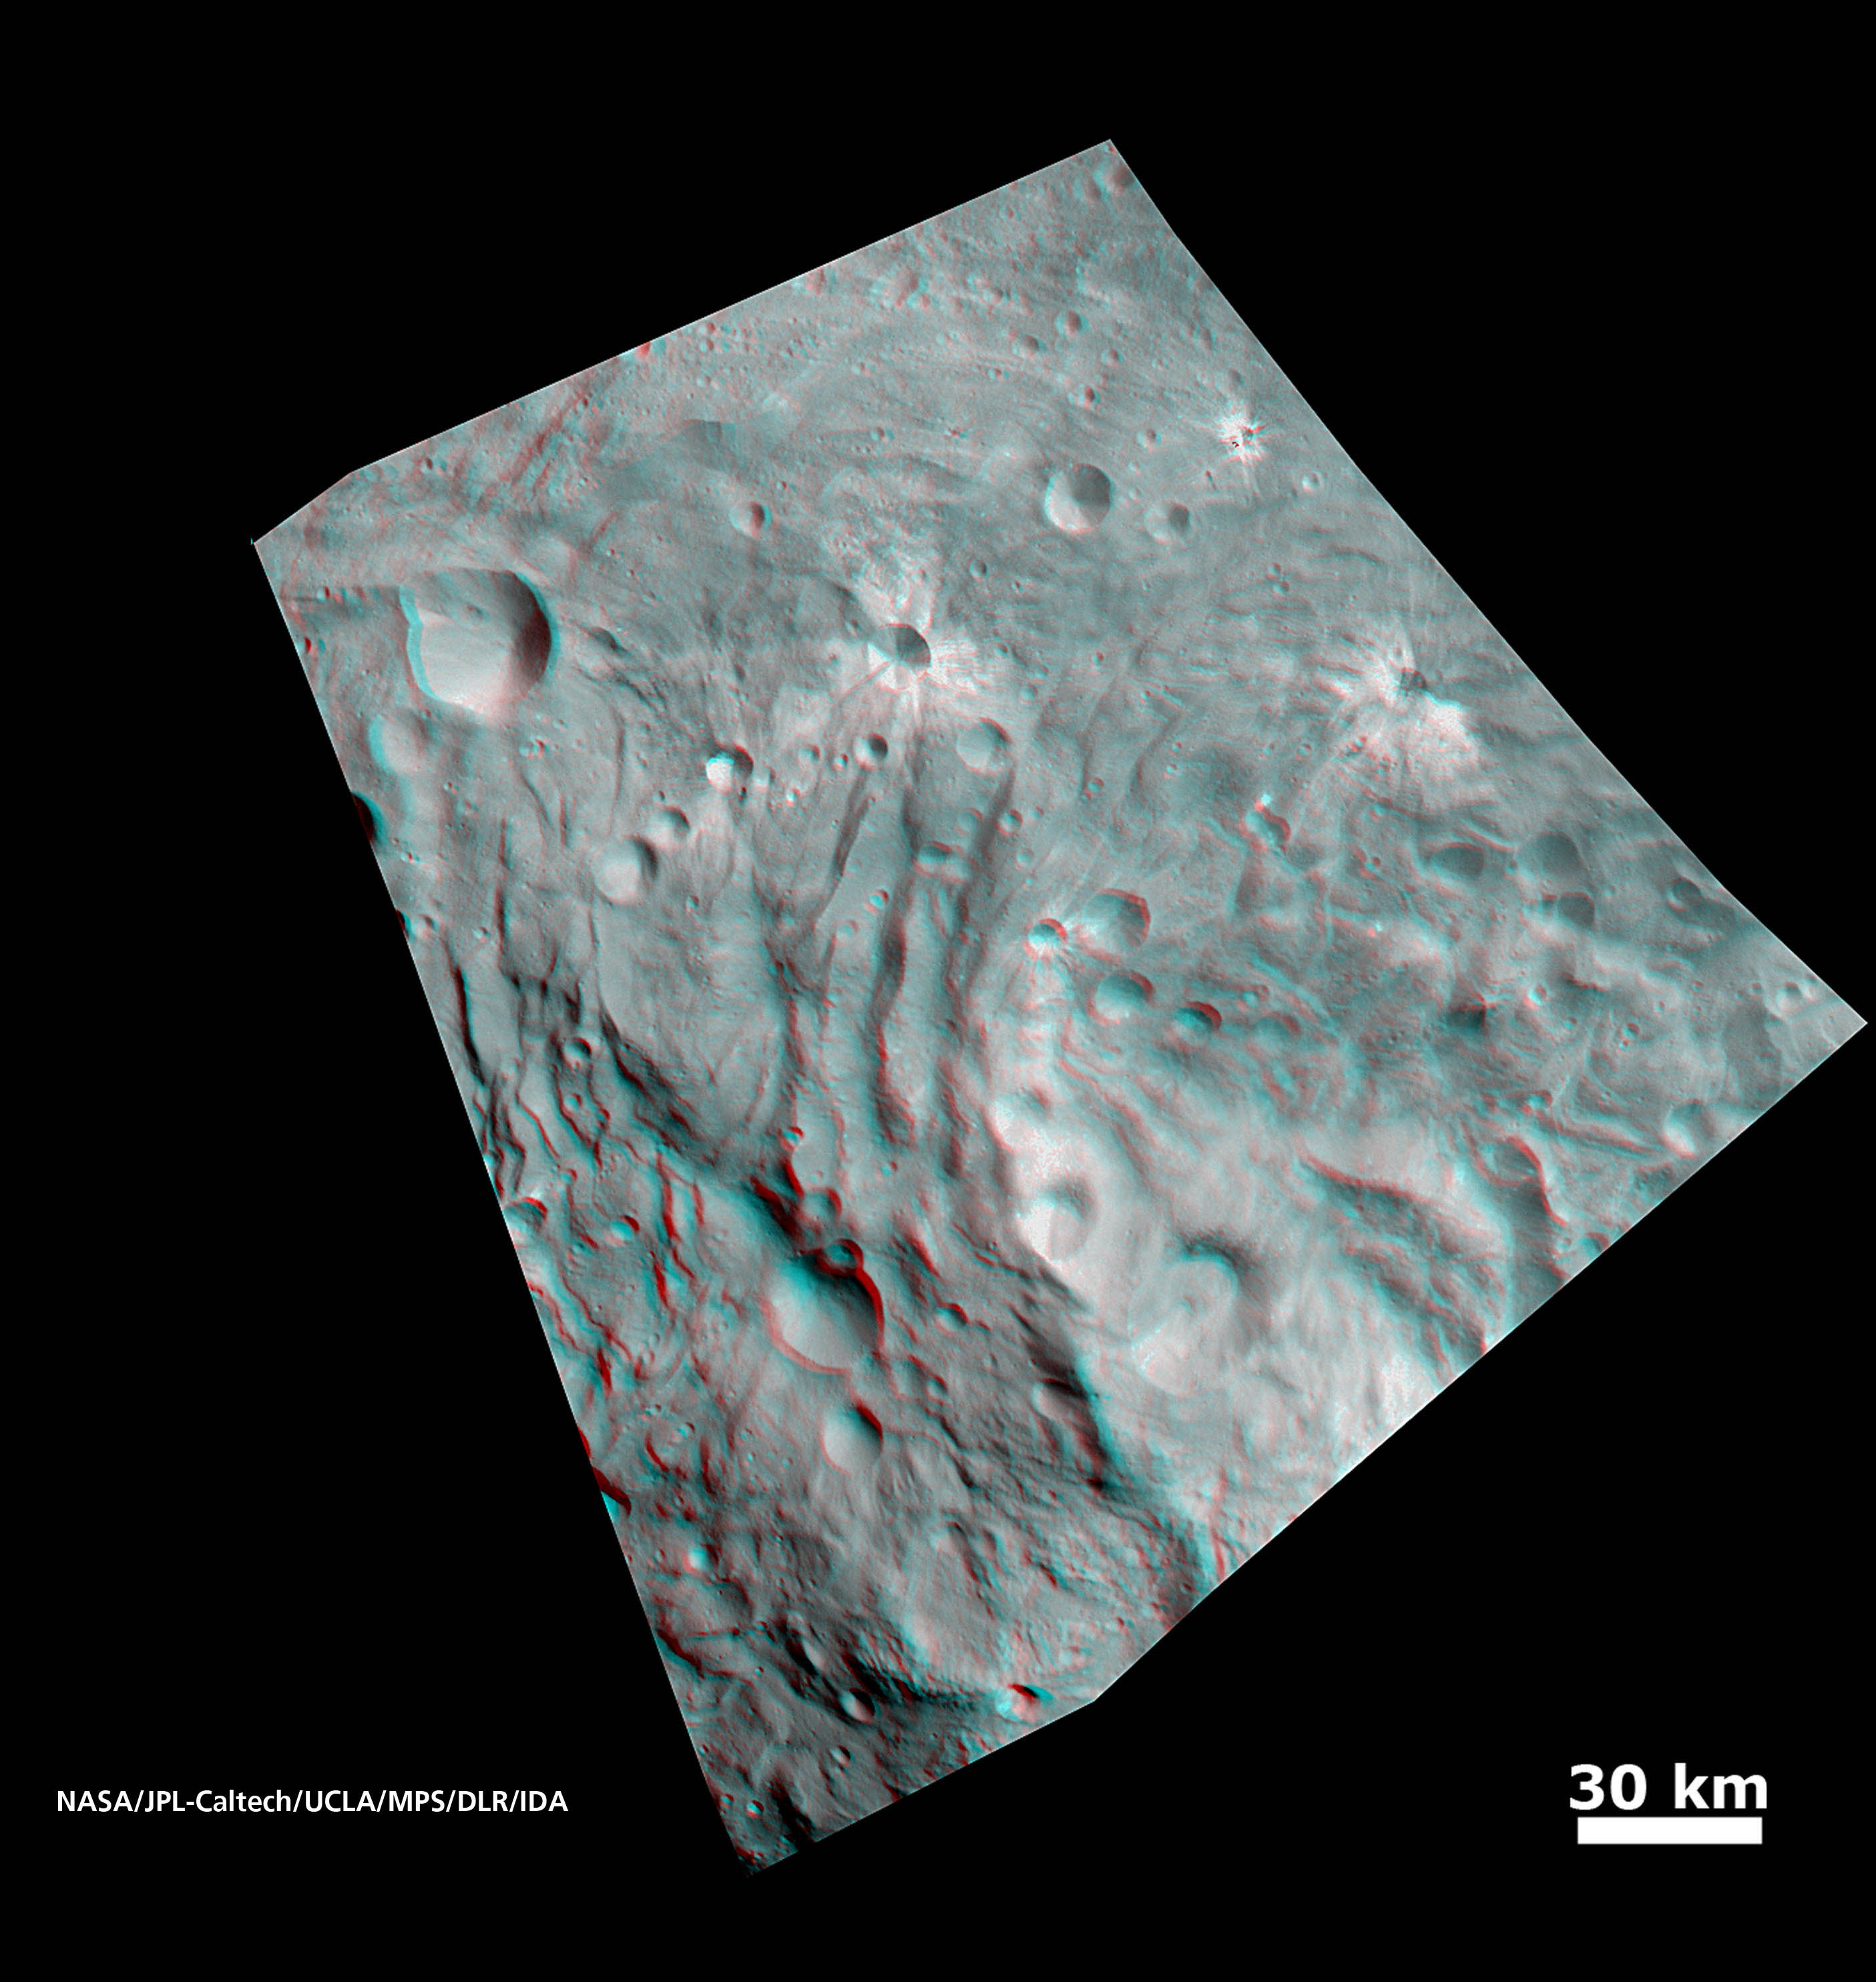 In this image, obtained by NASA's Dawn spacecraft from above the surface of the giant asteroid Vesta, topography in the area surrounding the south pole area shows impact craters, ridges and grooves. You need 3-D glasses to view this image.